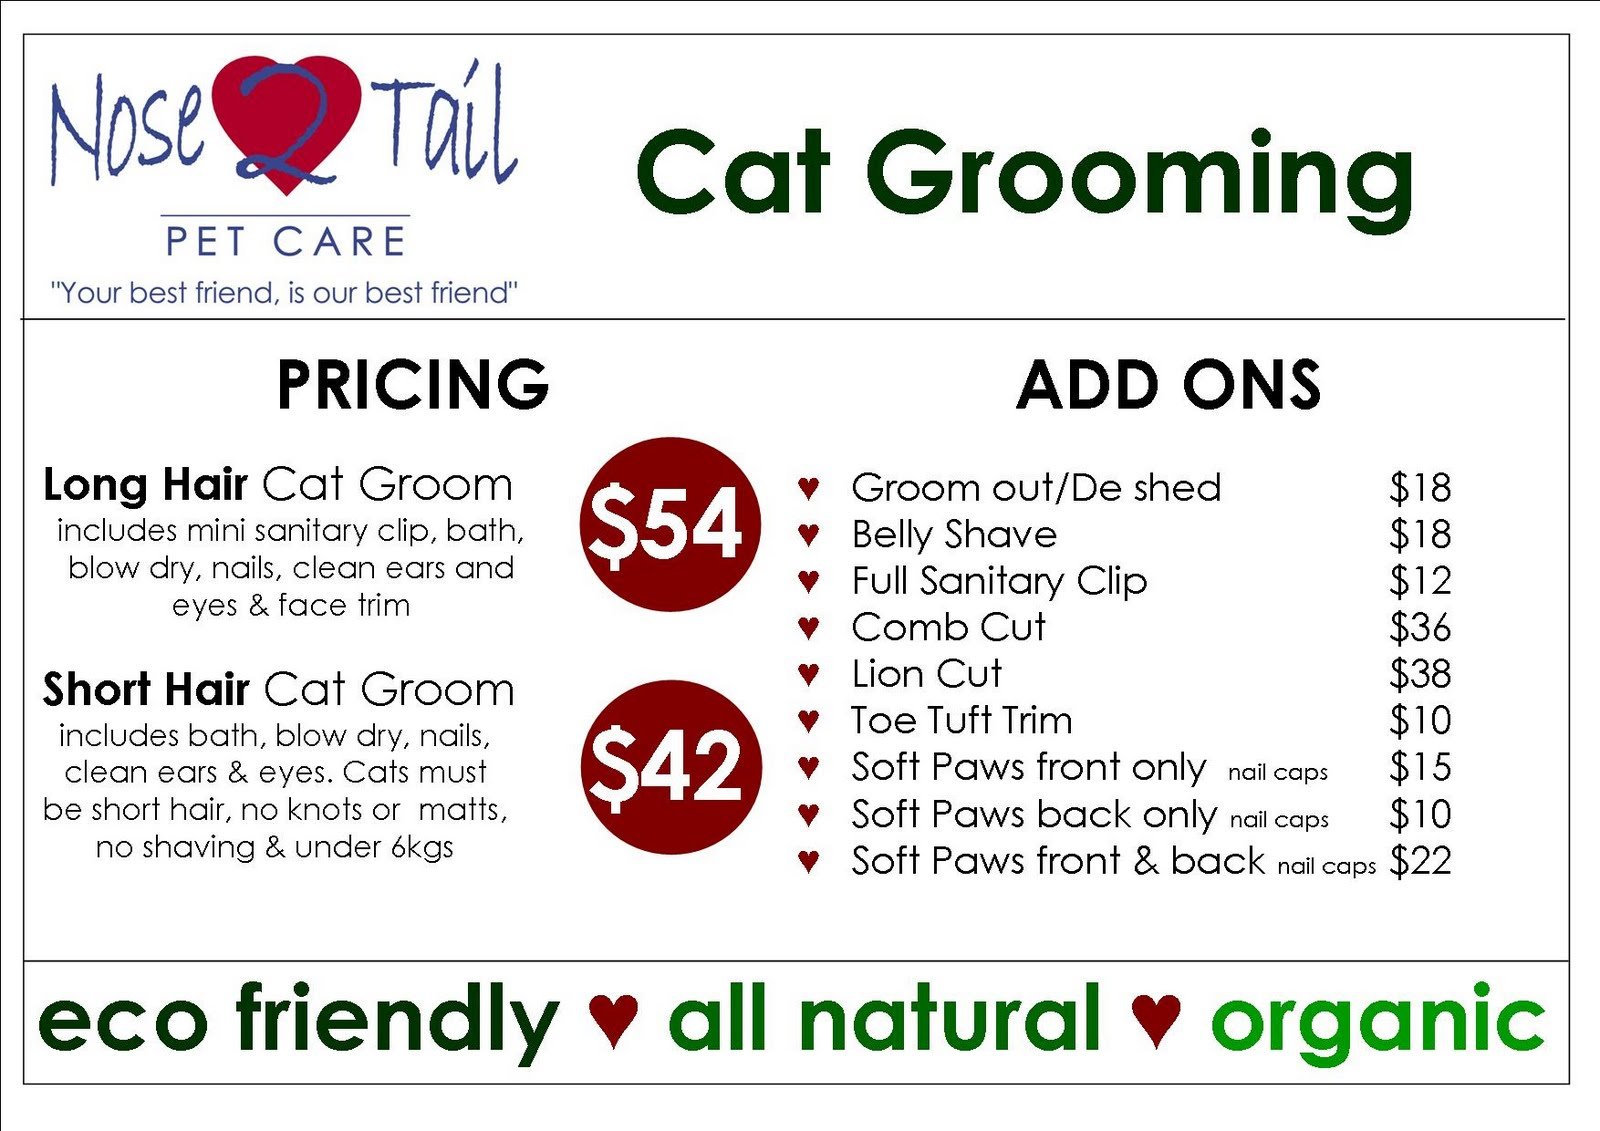 Nose 2 Tail Pet Care Latest News Cat Grooming Prices